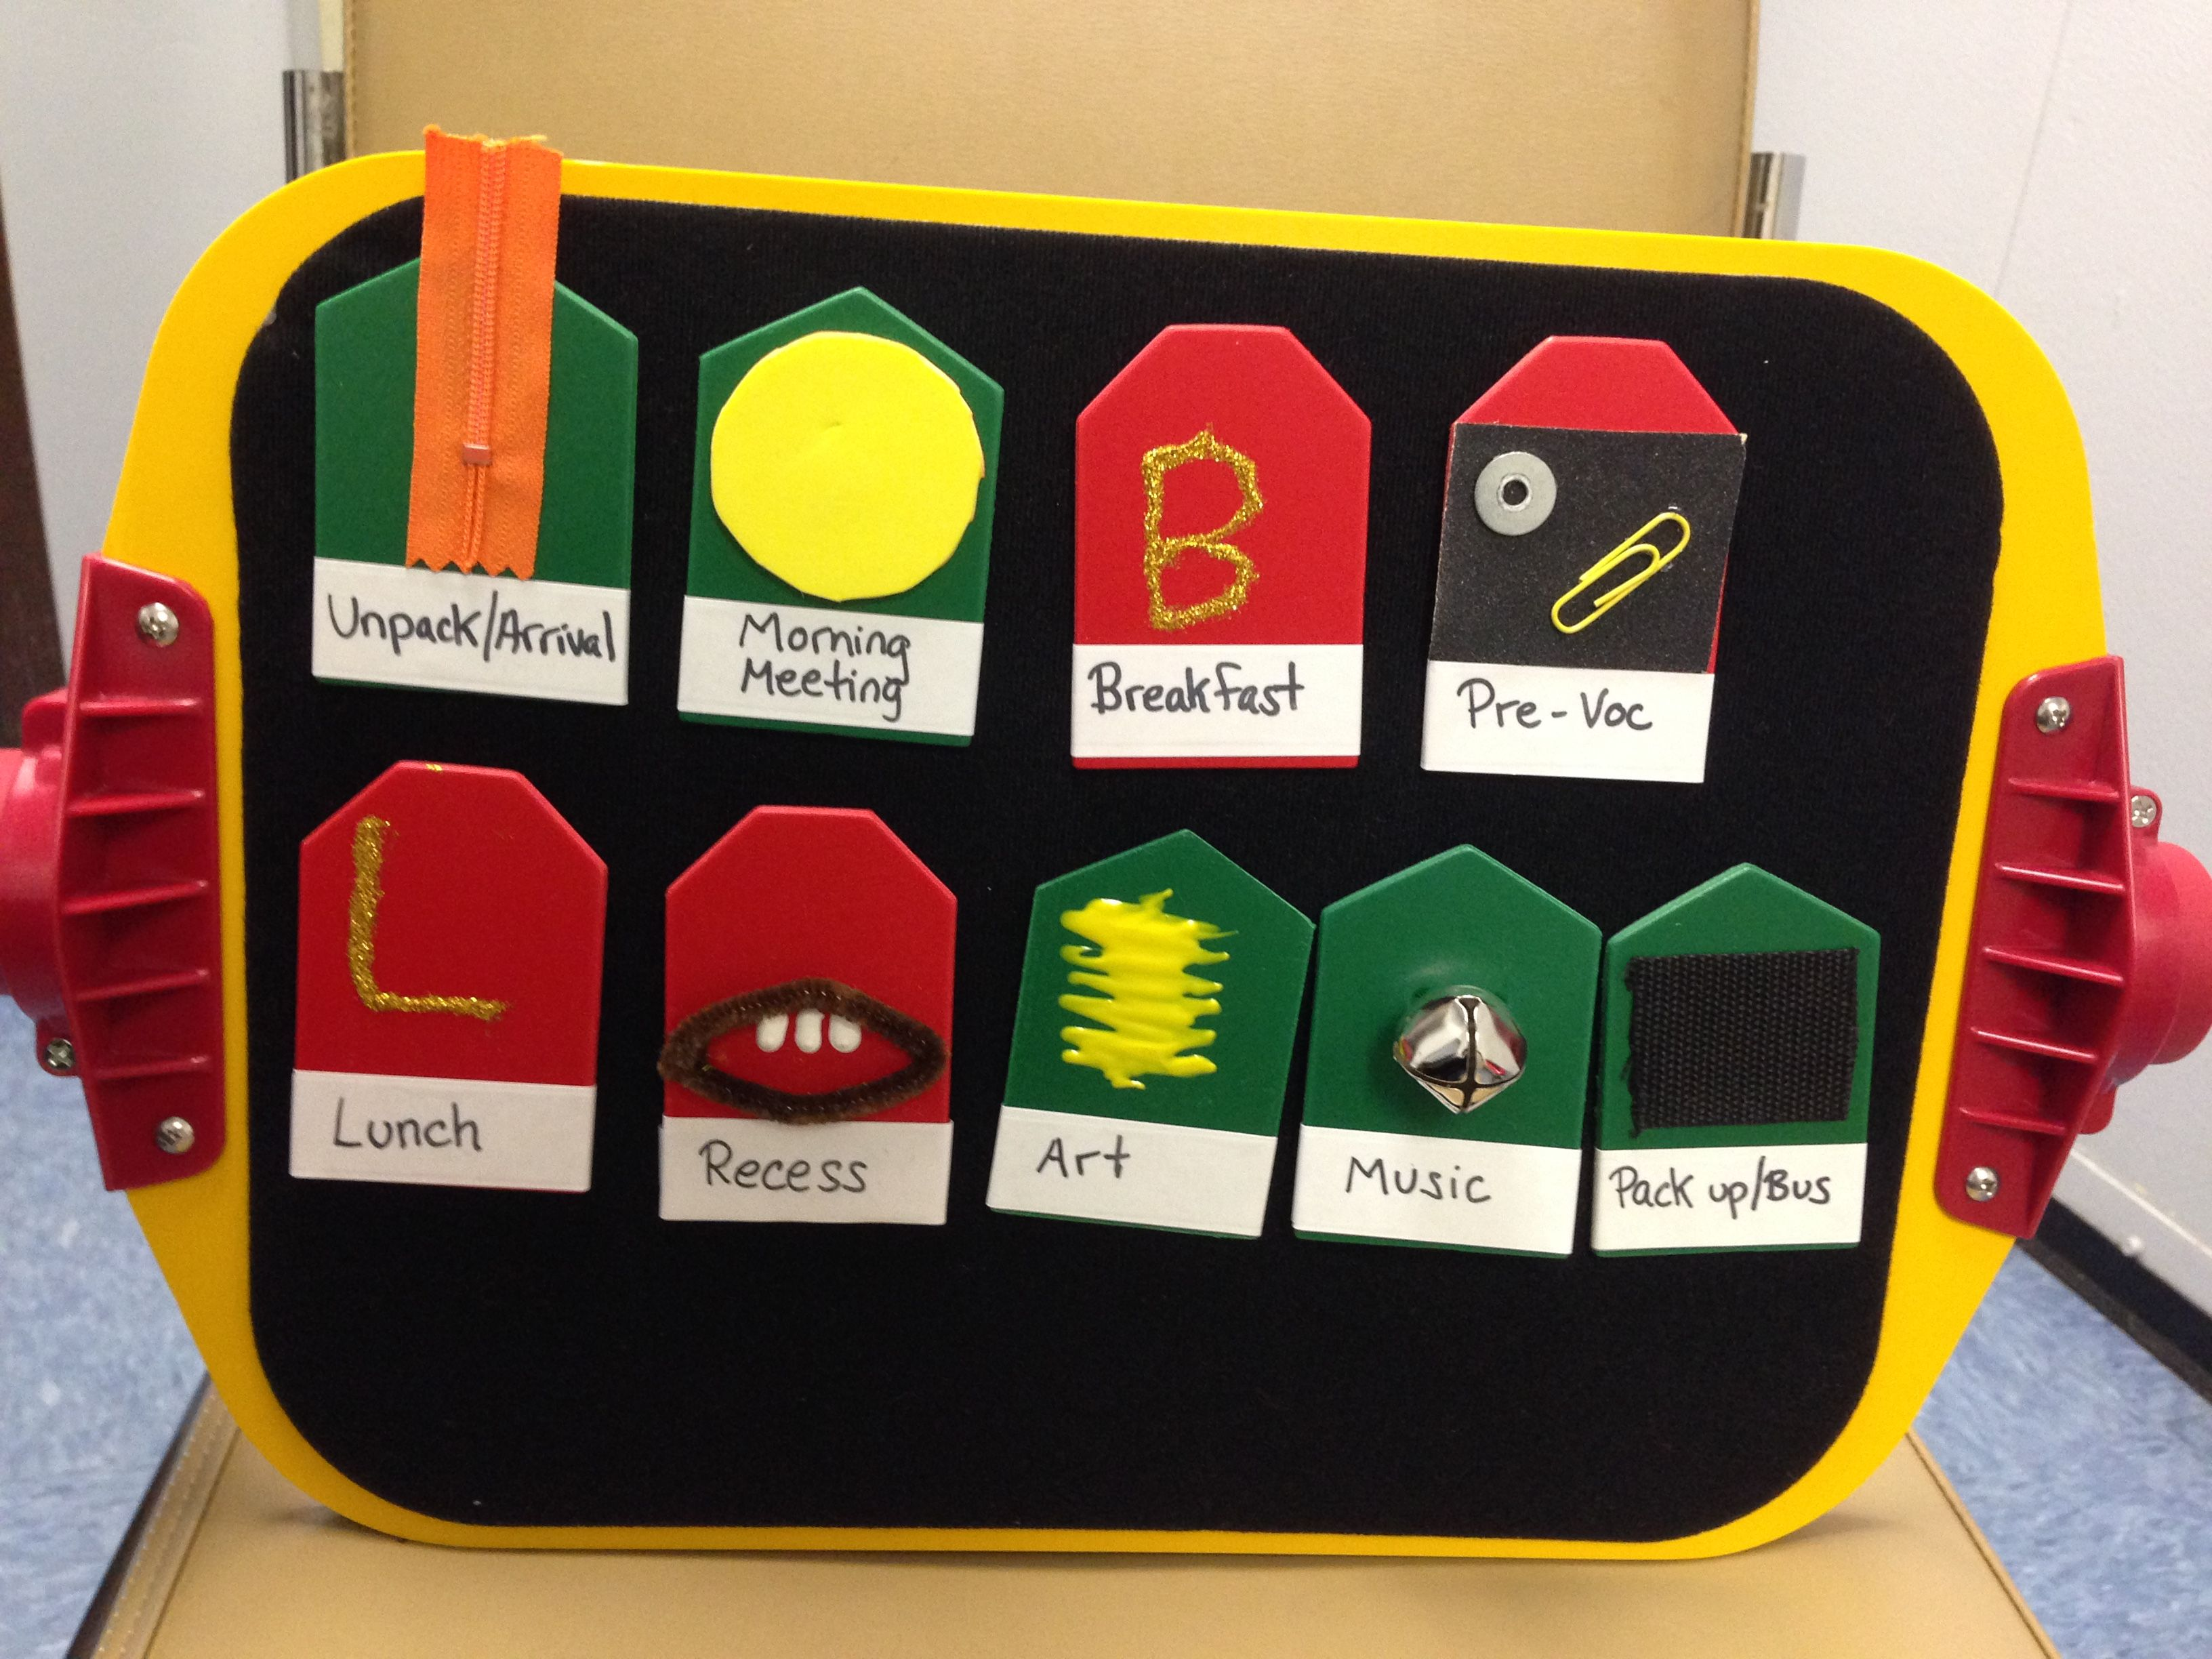 Tactile Schedule For Students With Visual Impairments And Multiple Disabilities